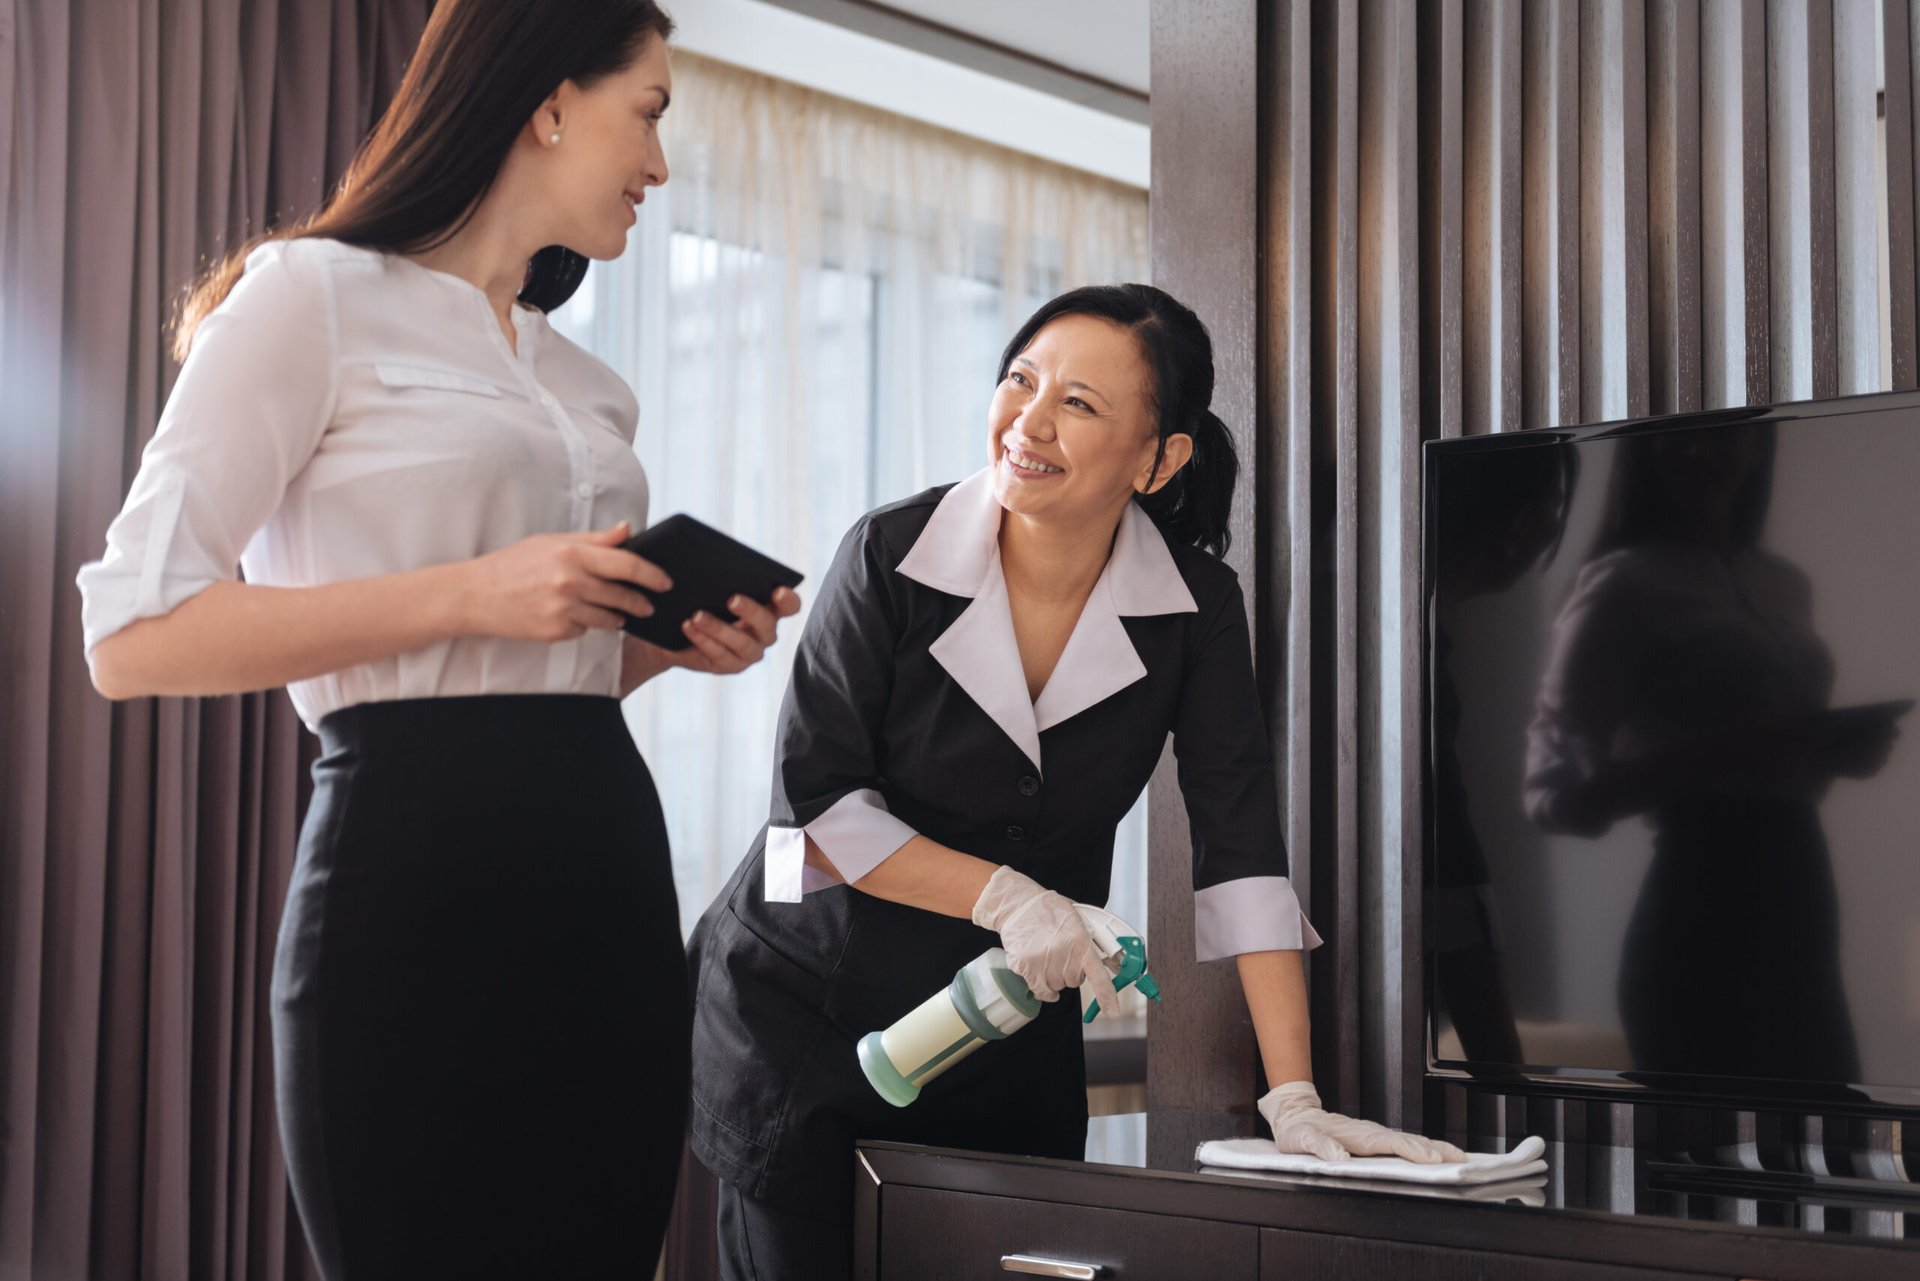 Woman talking to hotel maid